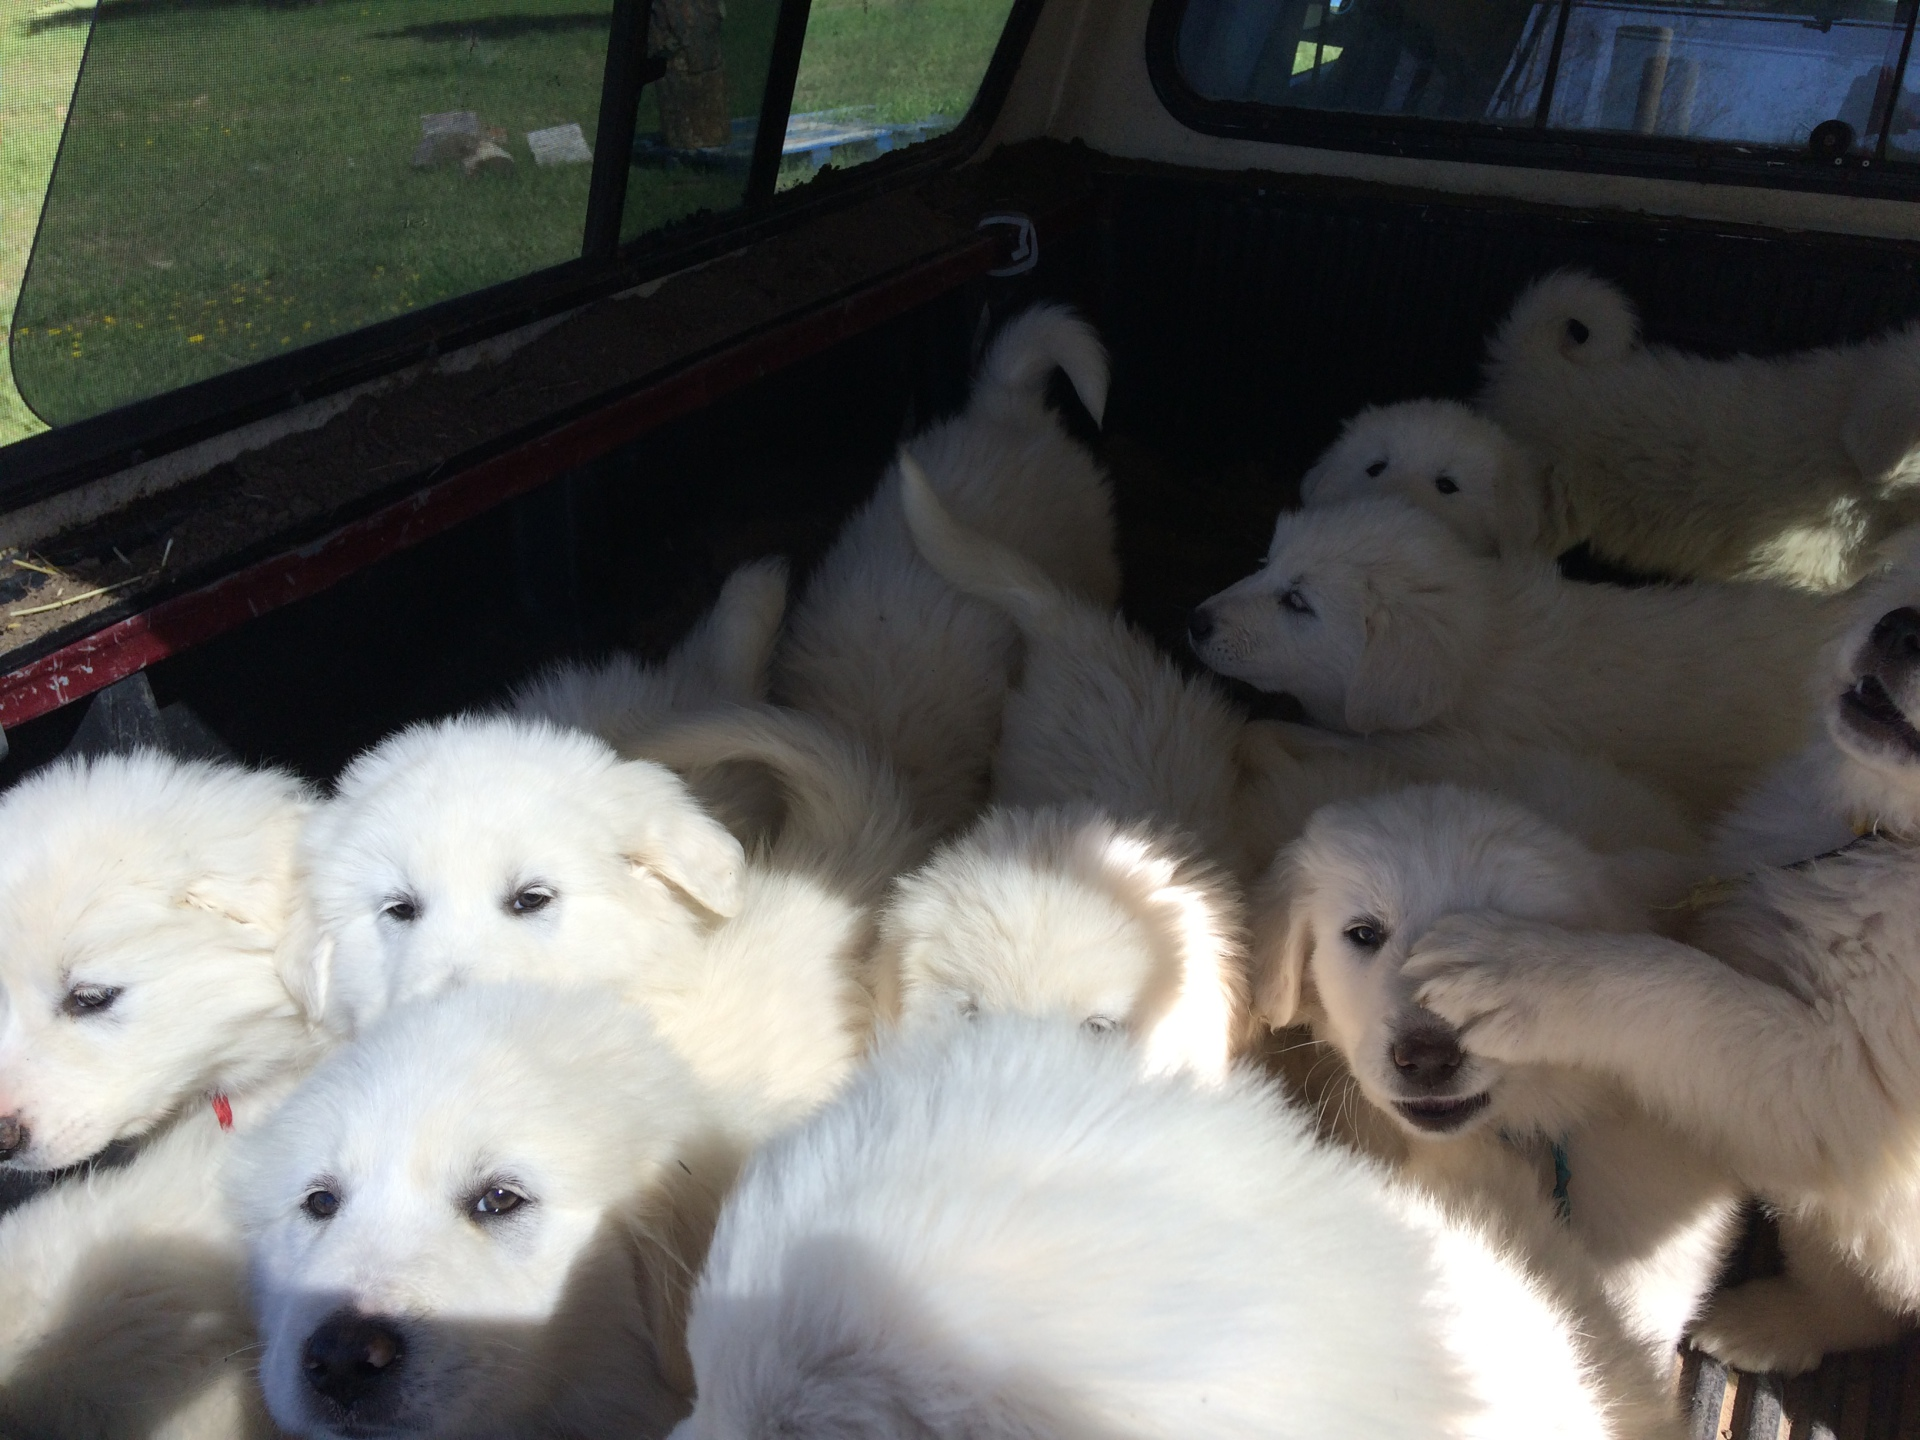 Outing in the truck